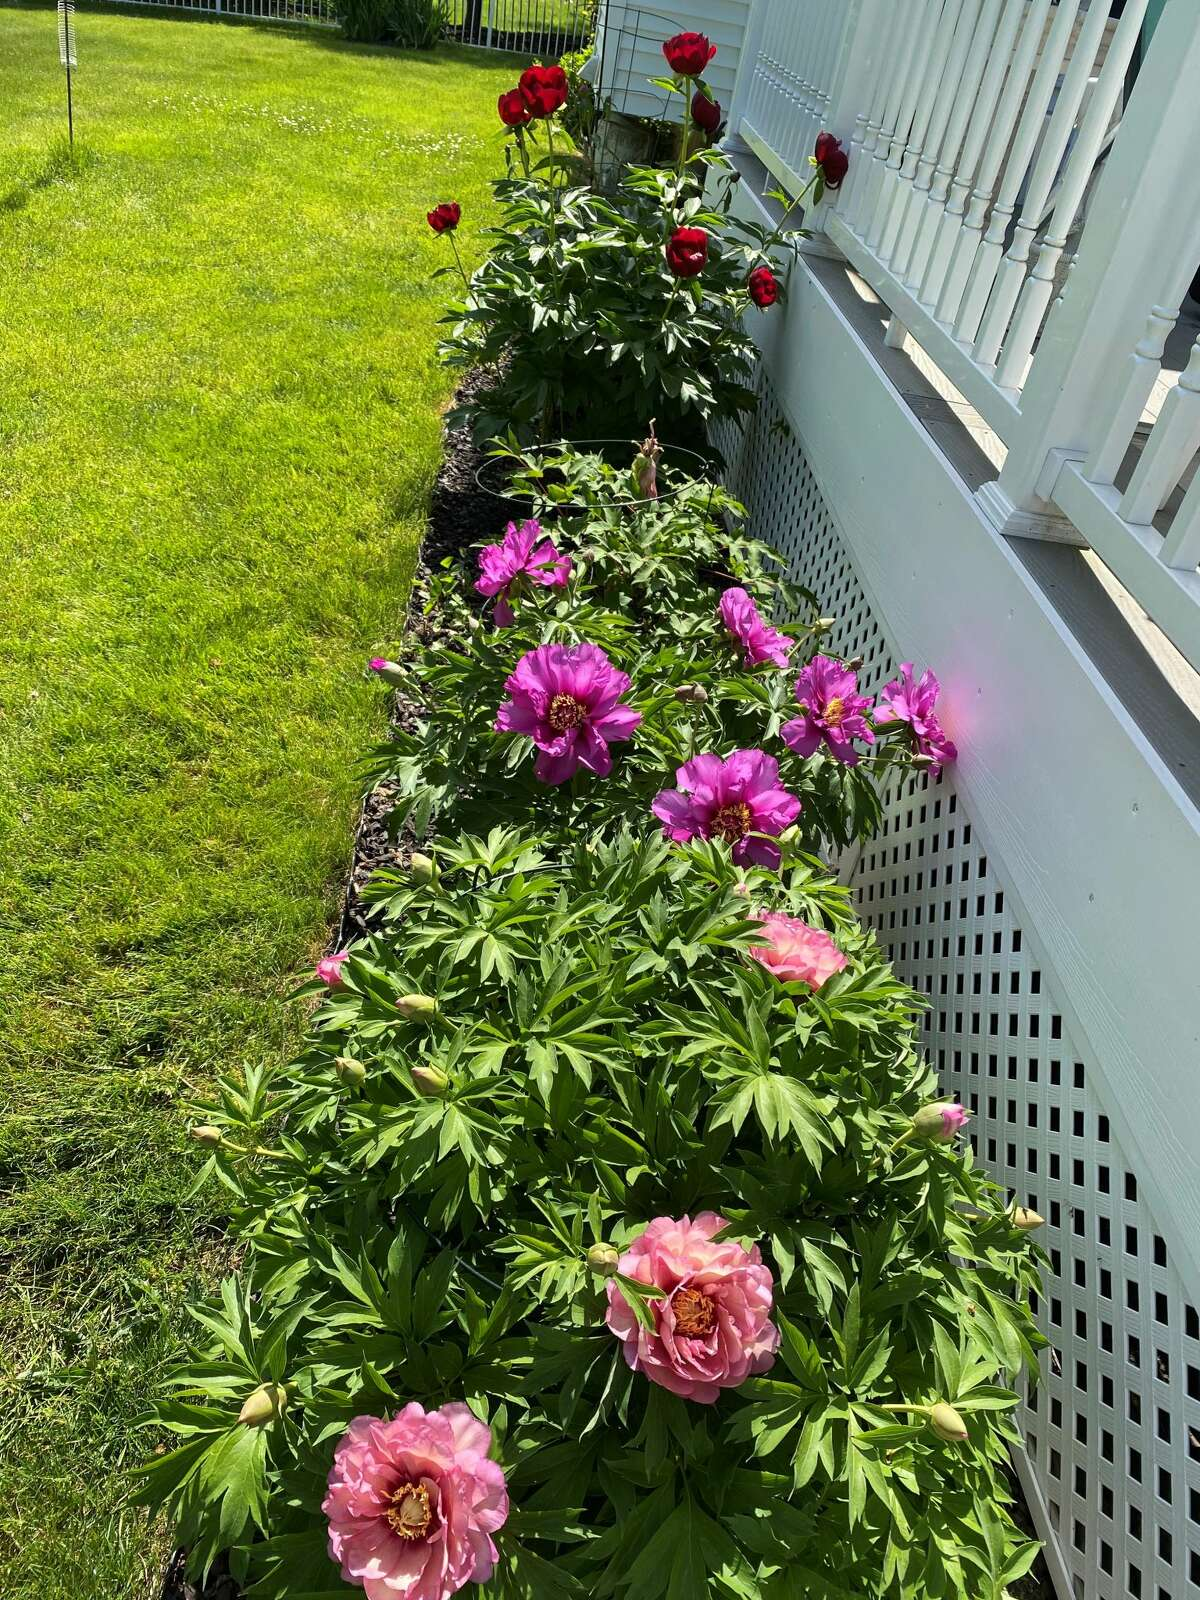 Spring time is a beautiful time for flowers. Cyndi Magenis of Guilderland, NY has the right soil and sun exposure for beautiful flowers.